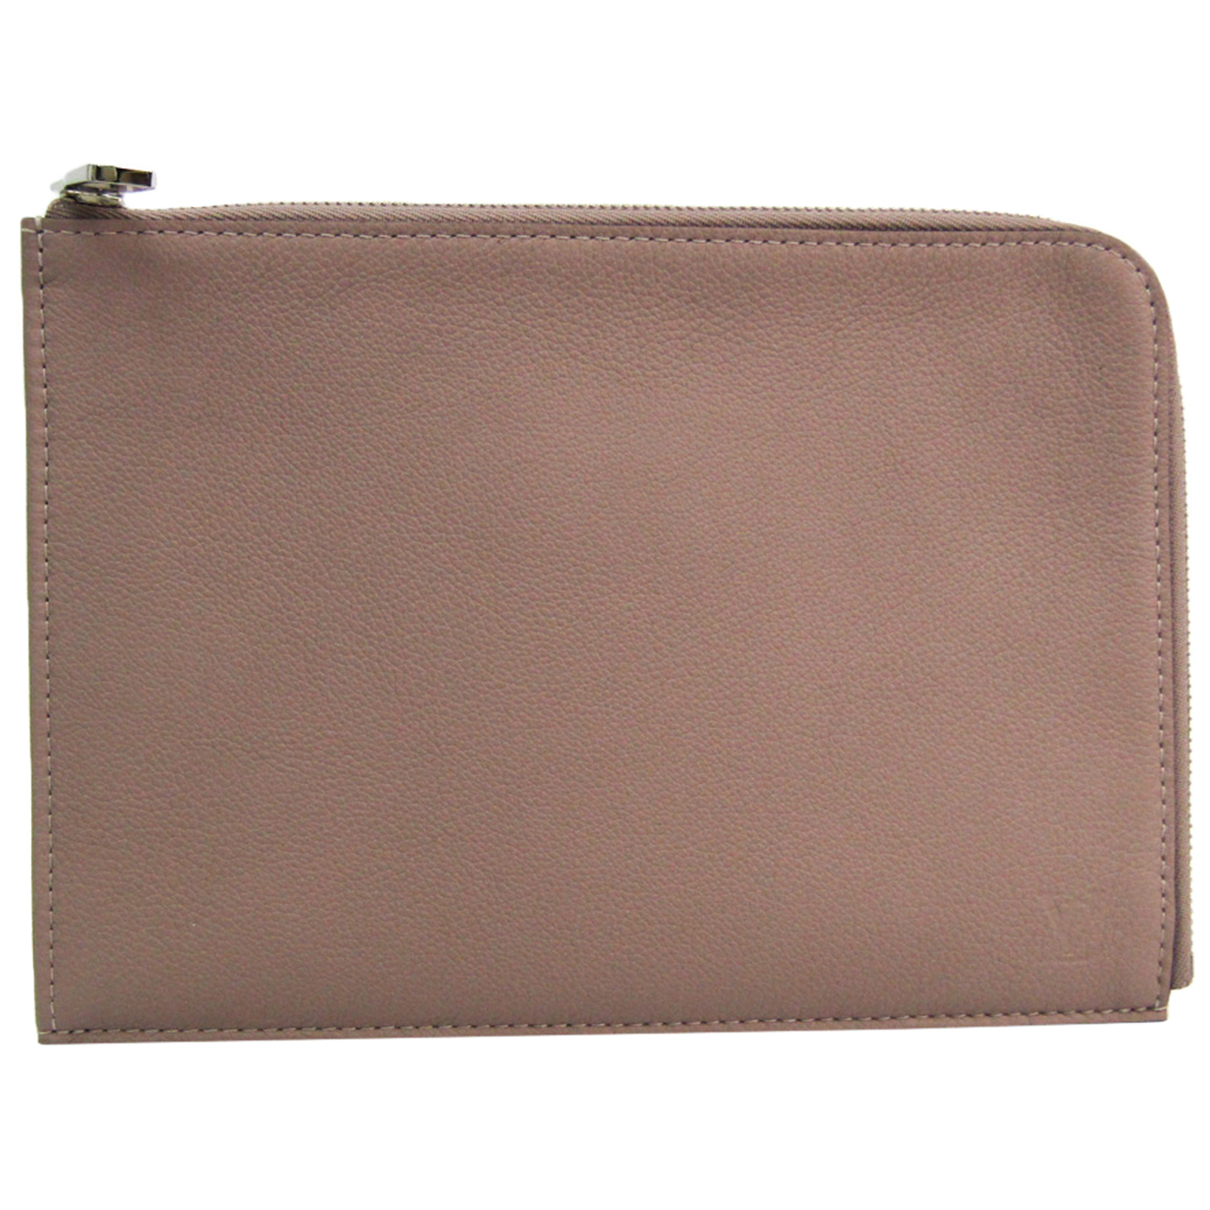 Louis Vuitton N Beige Leather Clutch bag for Women N